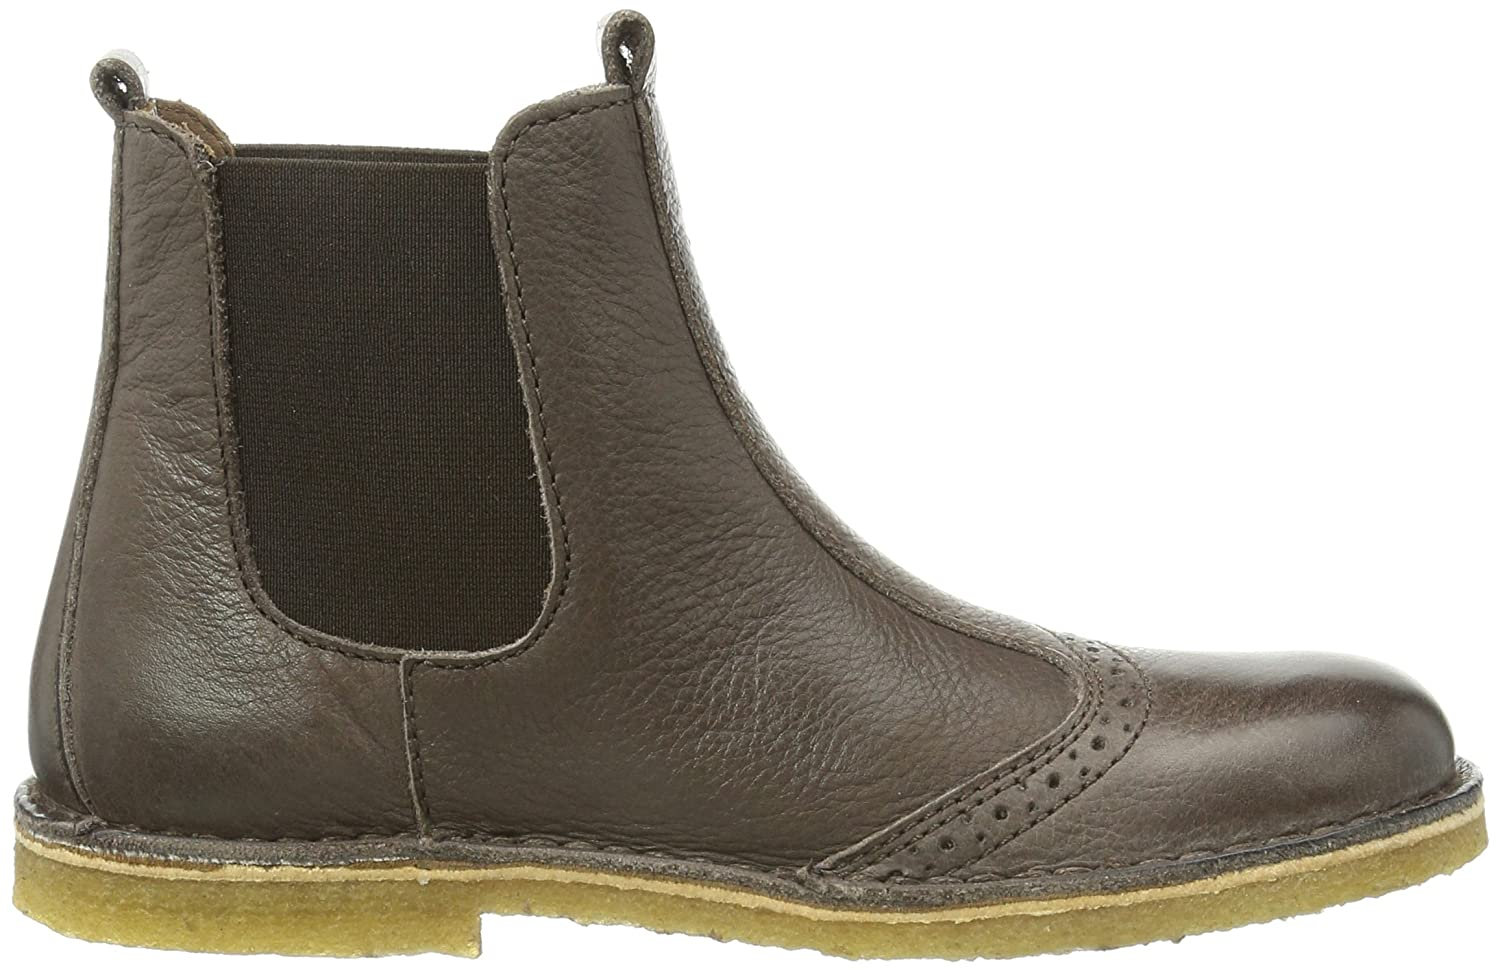 Bisgaard Stiefel Mit Lederfutter 50203214, Unisex-Child Boots, Brown (60  Brown), 7 UK: Amazon.co.uk: Shoes & Bags